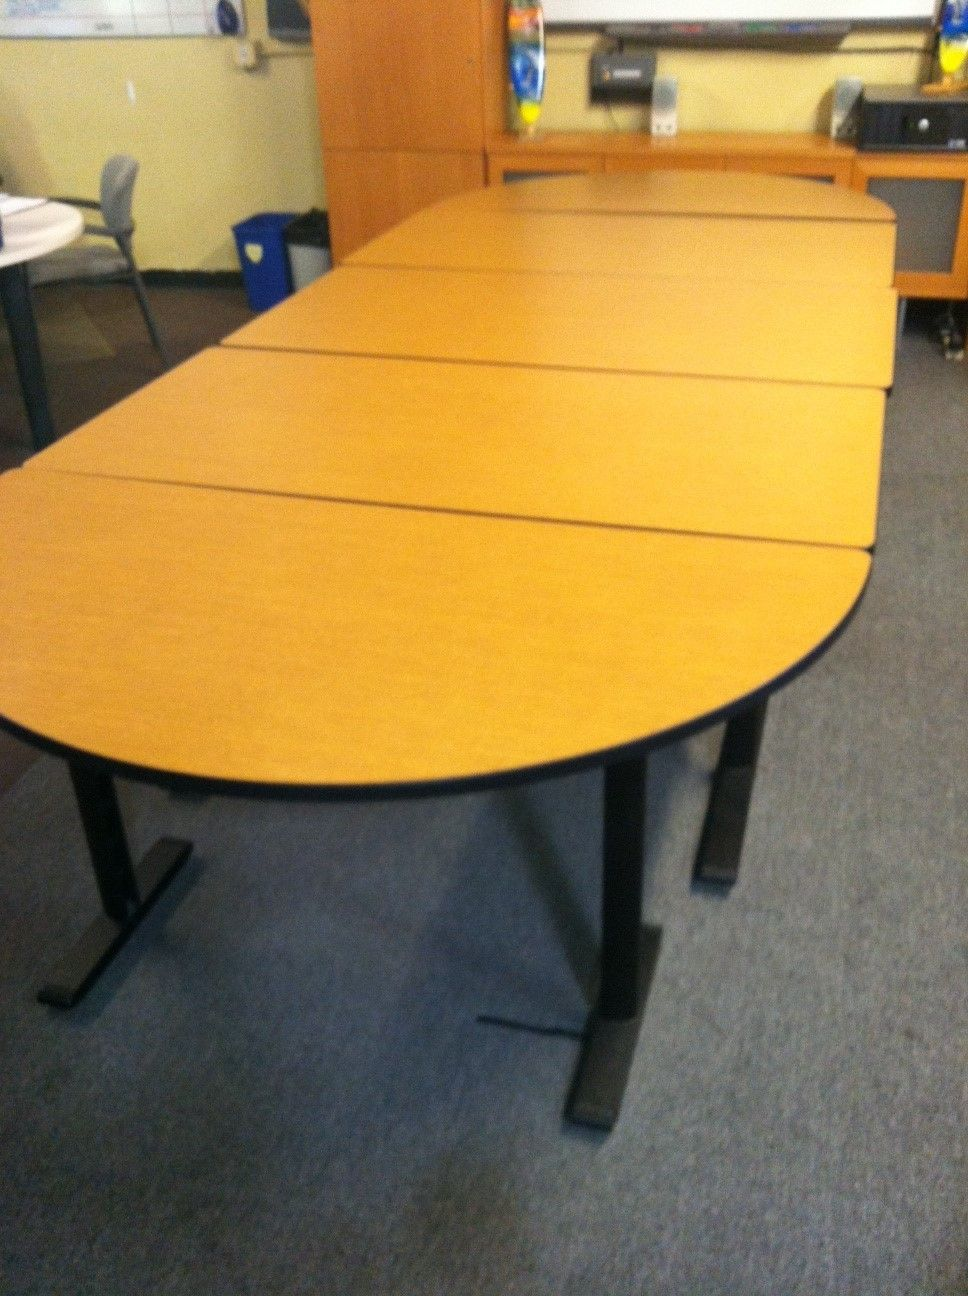 Used Training Tables These Unique Laminate Racetrack Tables Are Available As 10 X 5 Or 12 5 X 5 Conference Tables O Training Tables Table Conference Table